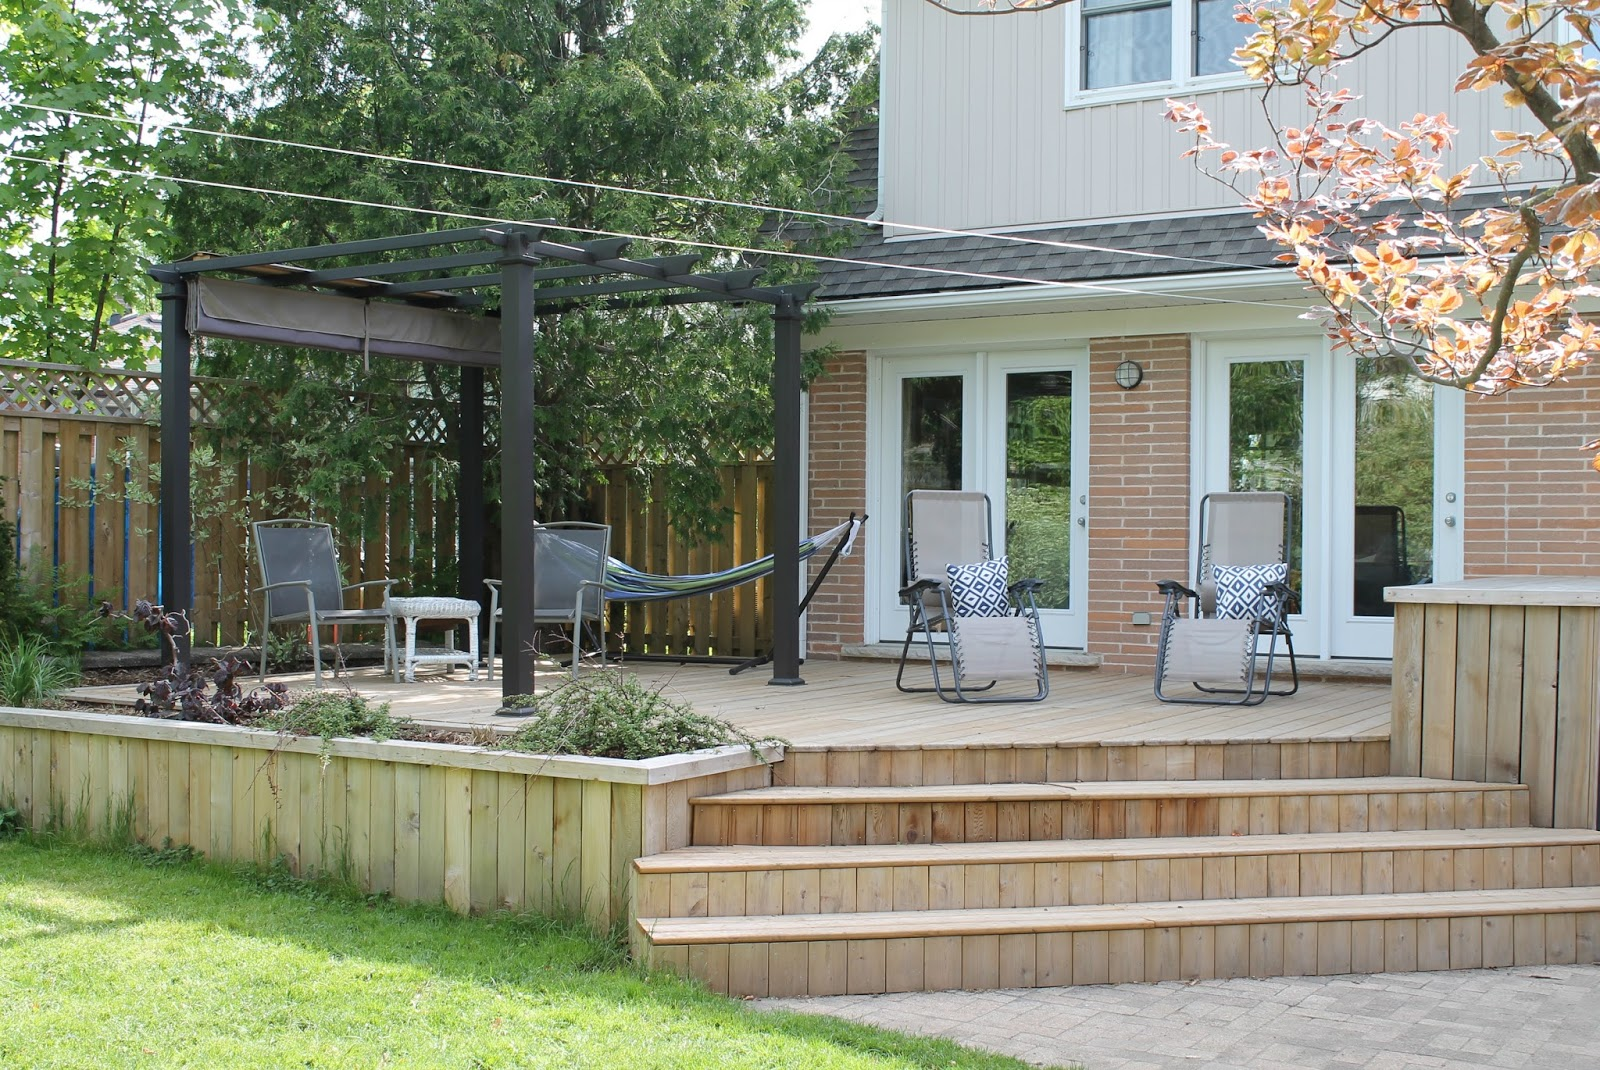 Free Online Deck Design Software. By Ed. We Have Been Planning On Building  This Deck For Many Years Now. When We Renovated In 2007, We Put In Two Patio  ...